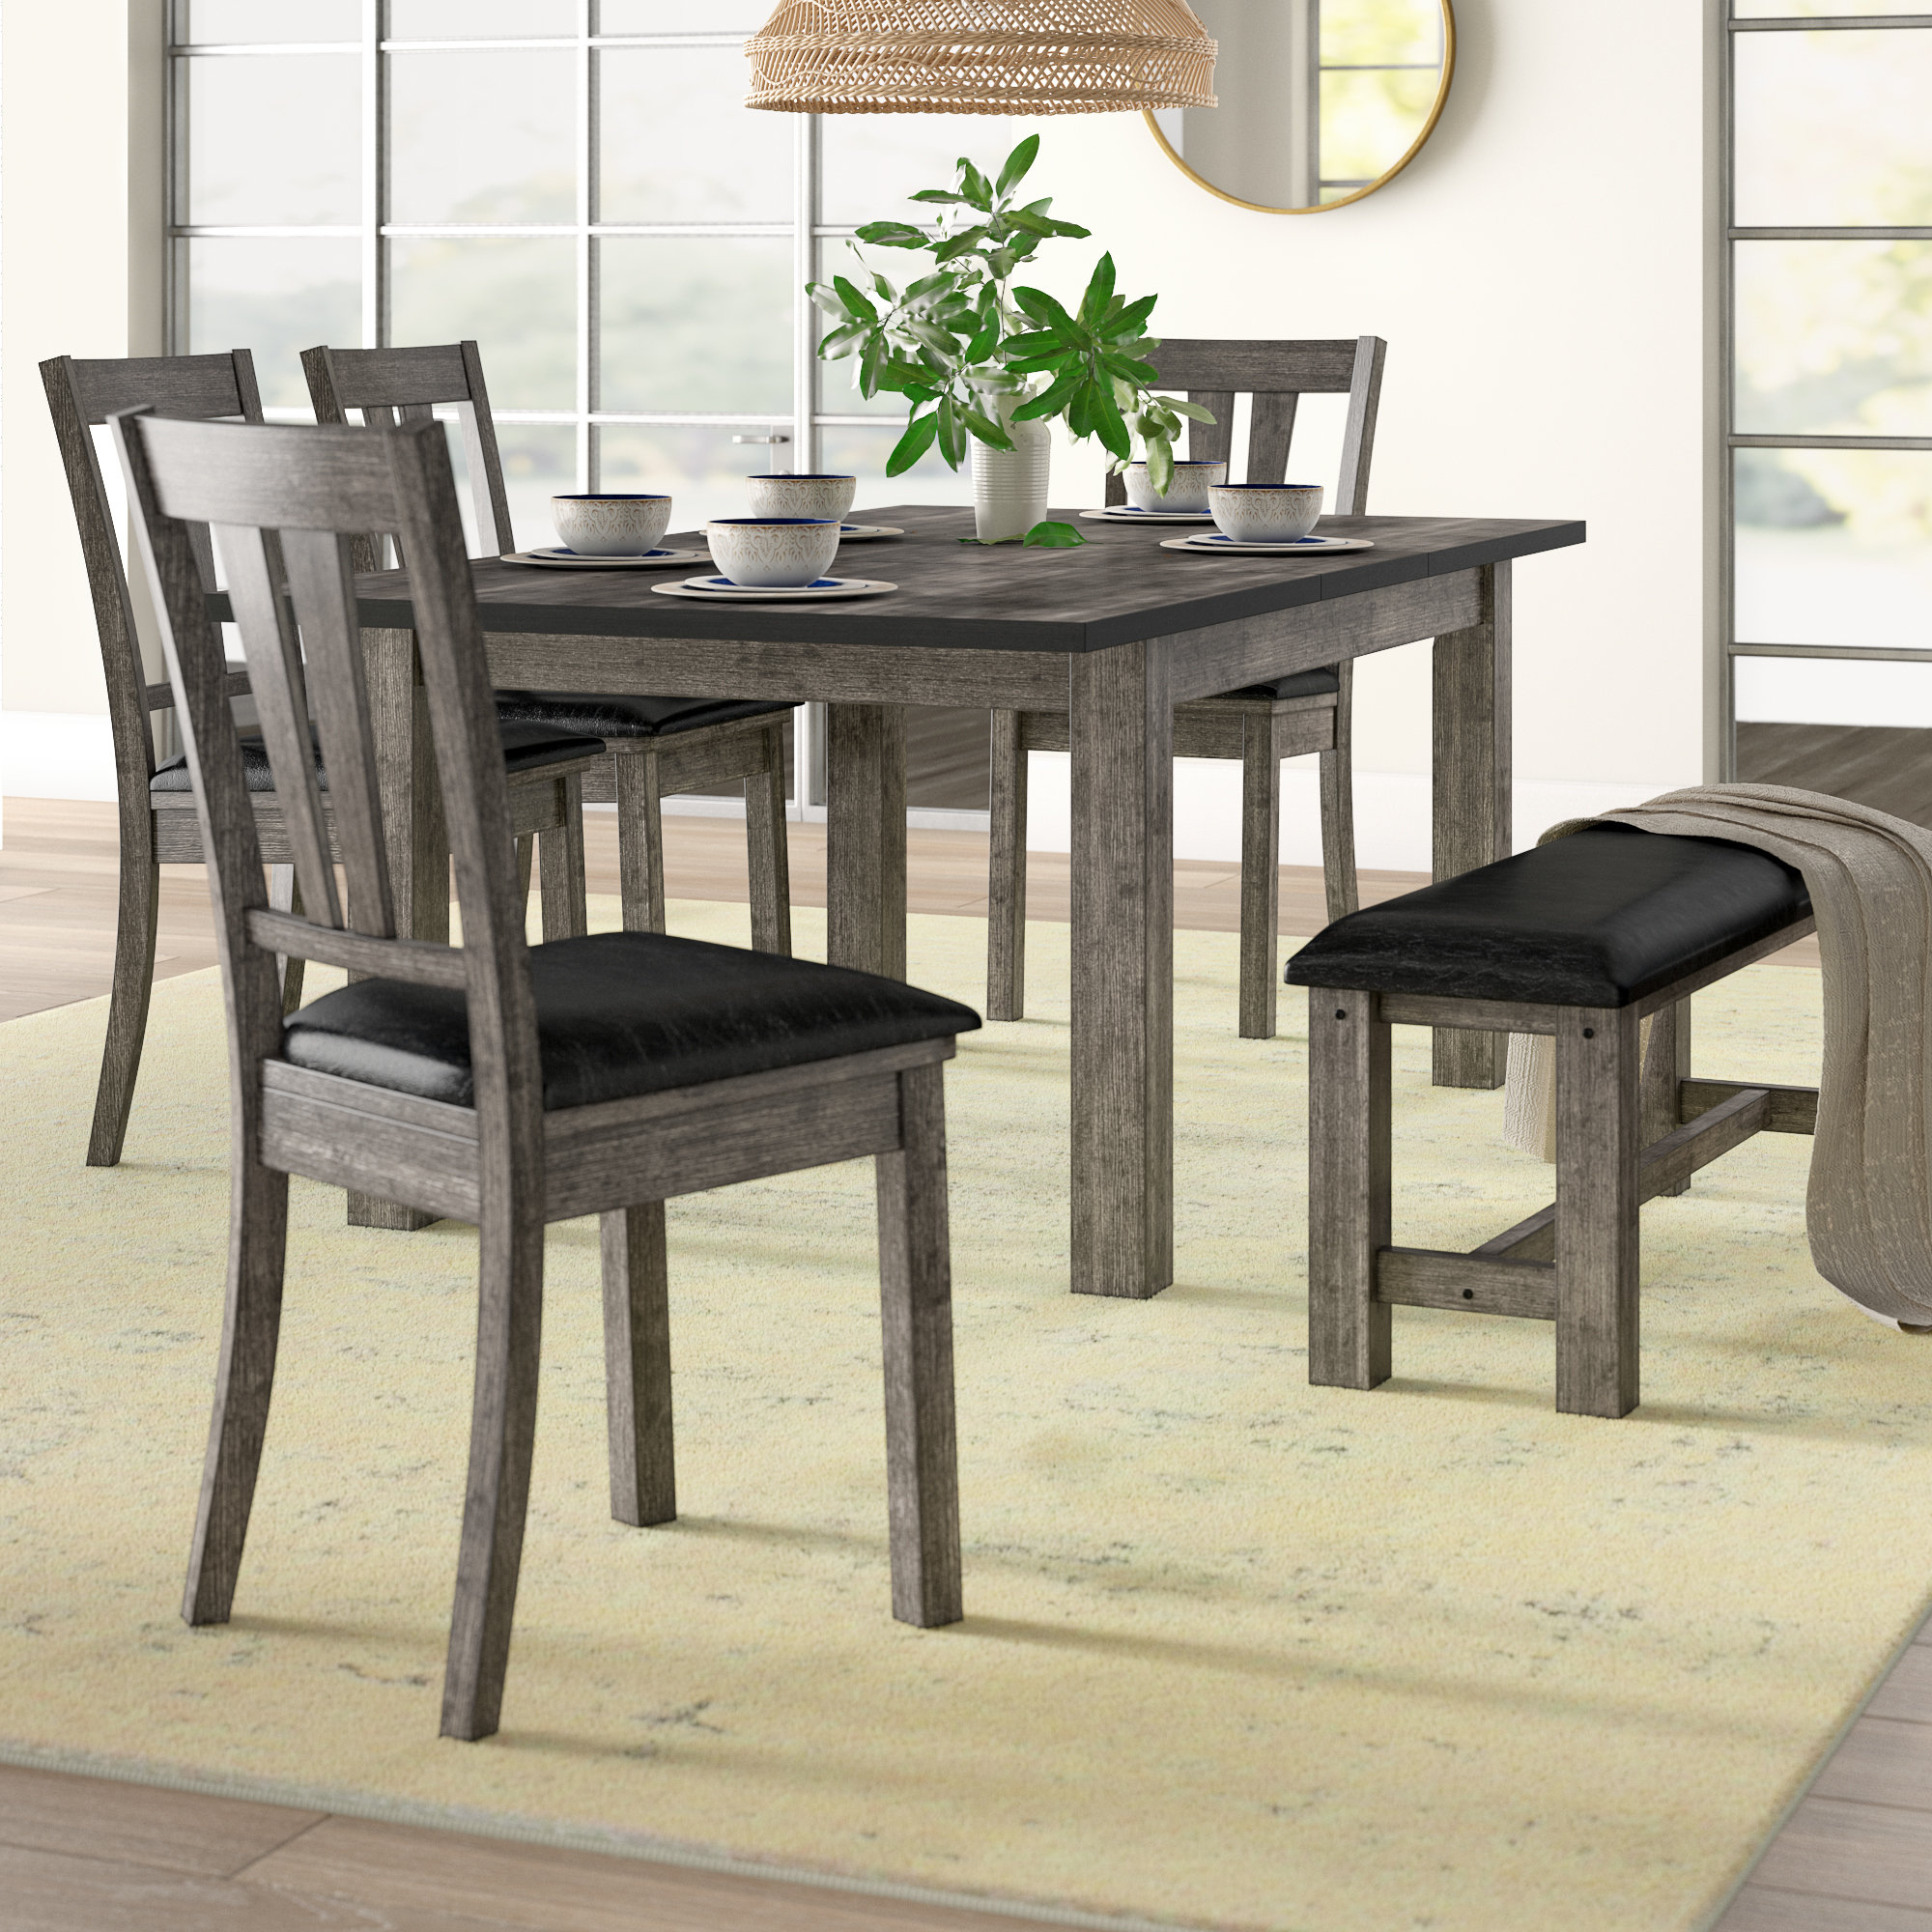 Most Recent Chelmsford 3 Piece Dining Sets With Regard To Mistana Katarina 6 Piece Extendable Solid Wood Dining Set & Reviews (View 9 of 20)